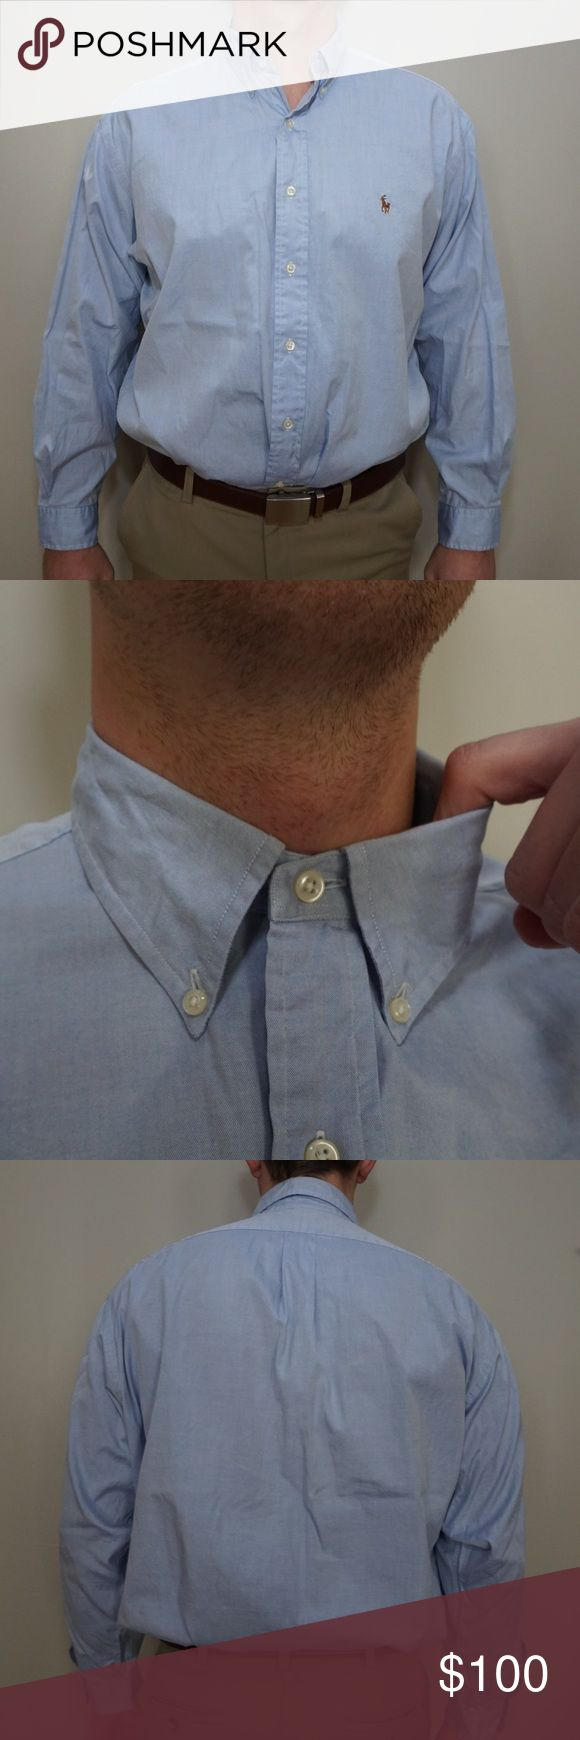 """Ralph Lauren men's blue dress shirt Great Ralph Laurent light blue dress shirt.  Length is 31.5"""" inches front and back.  Size on shirt says 17-34.   Photo model normally wears a 17"""" neck with a 36/37 length for reference.  MAKE AN OFFER!!! Ralph Lauren Shirts Dress Shirts"""